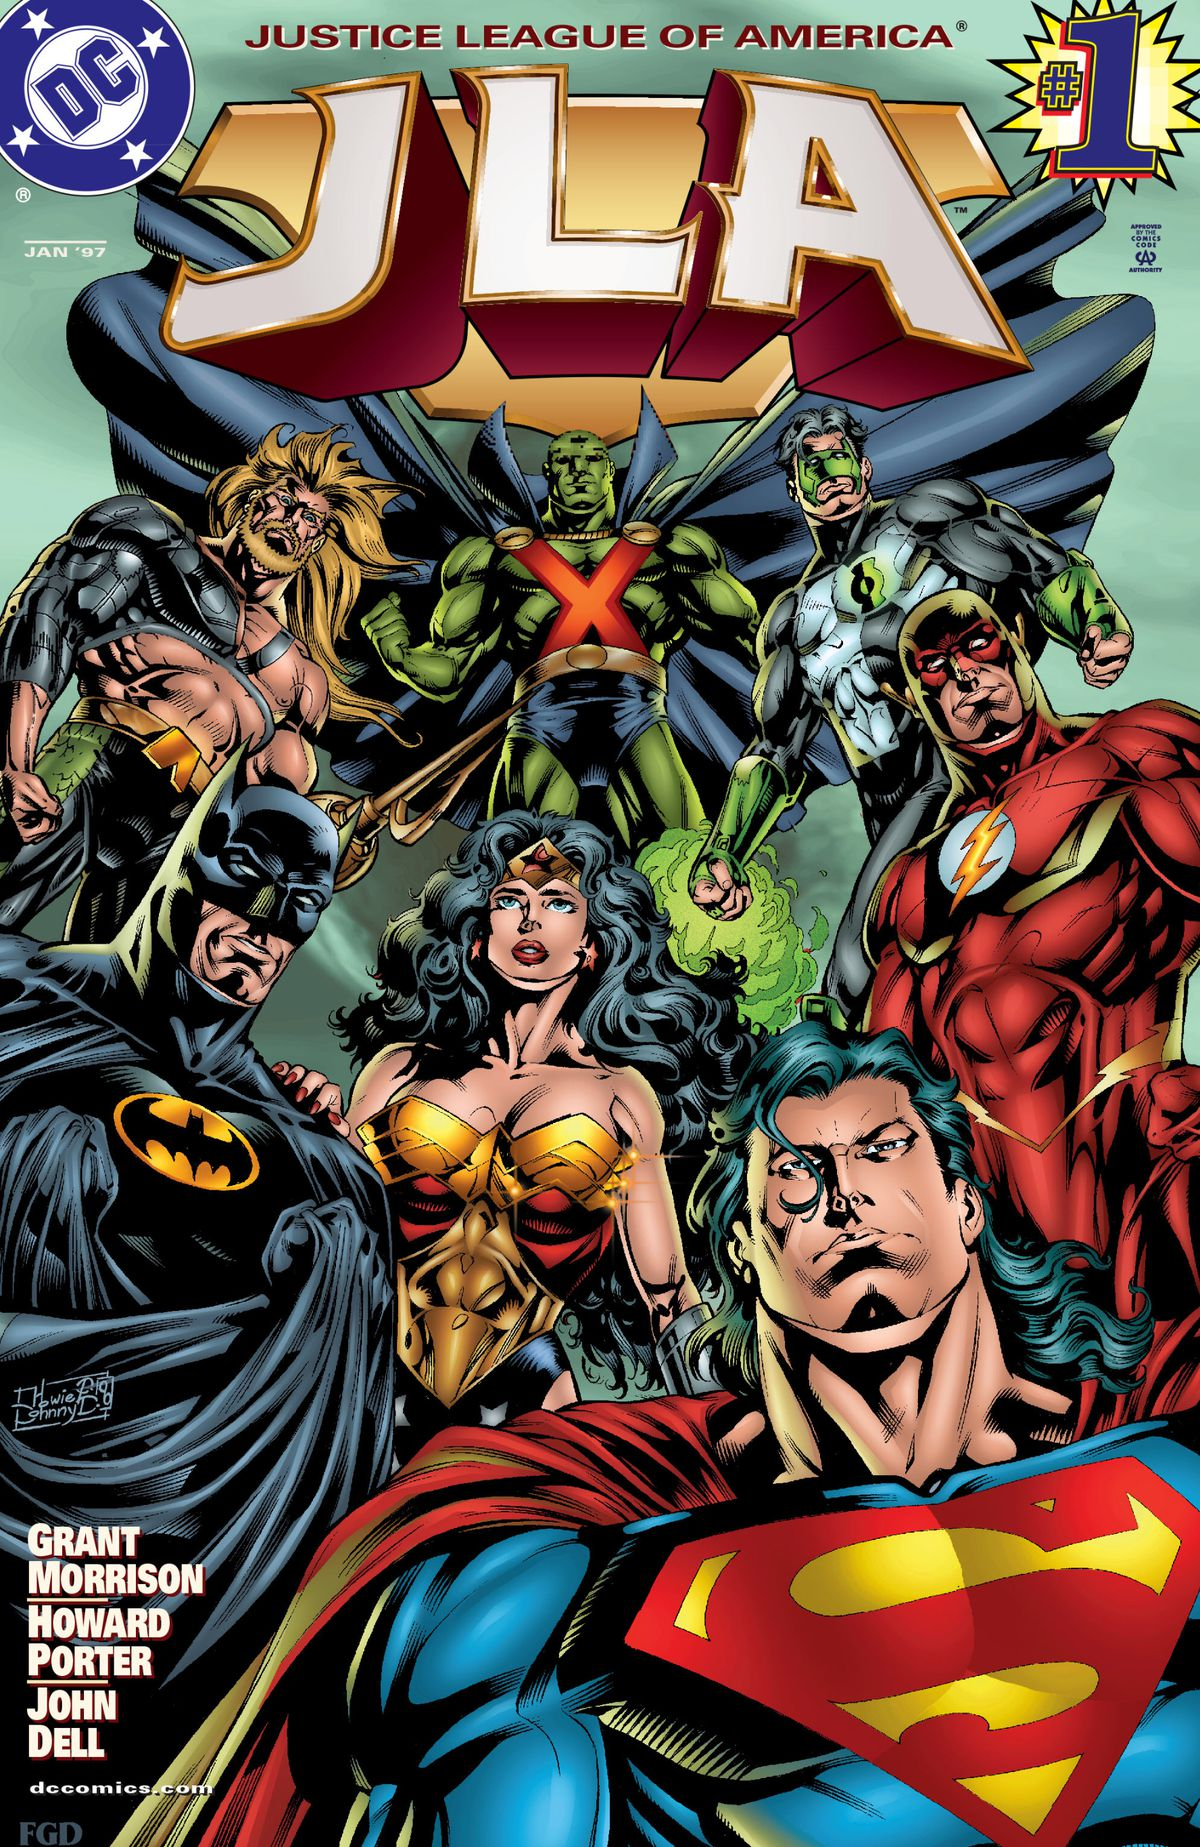 The Justice League on the cover of JLA #1, DC Comics (1997).